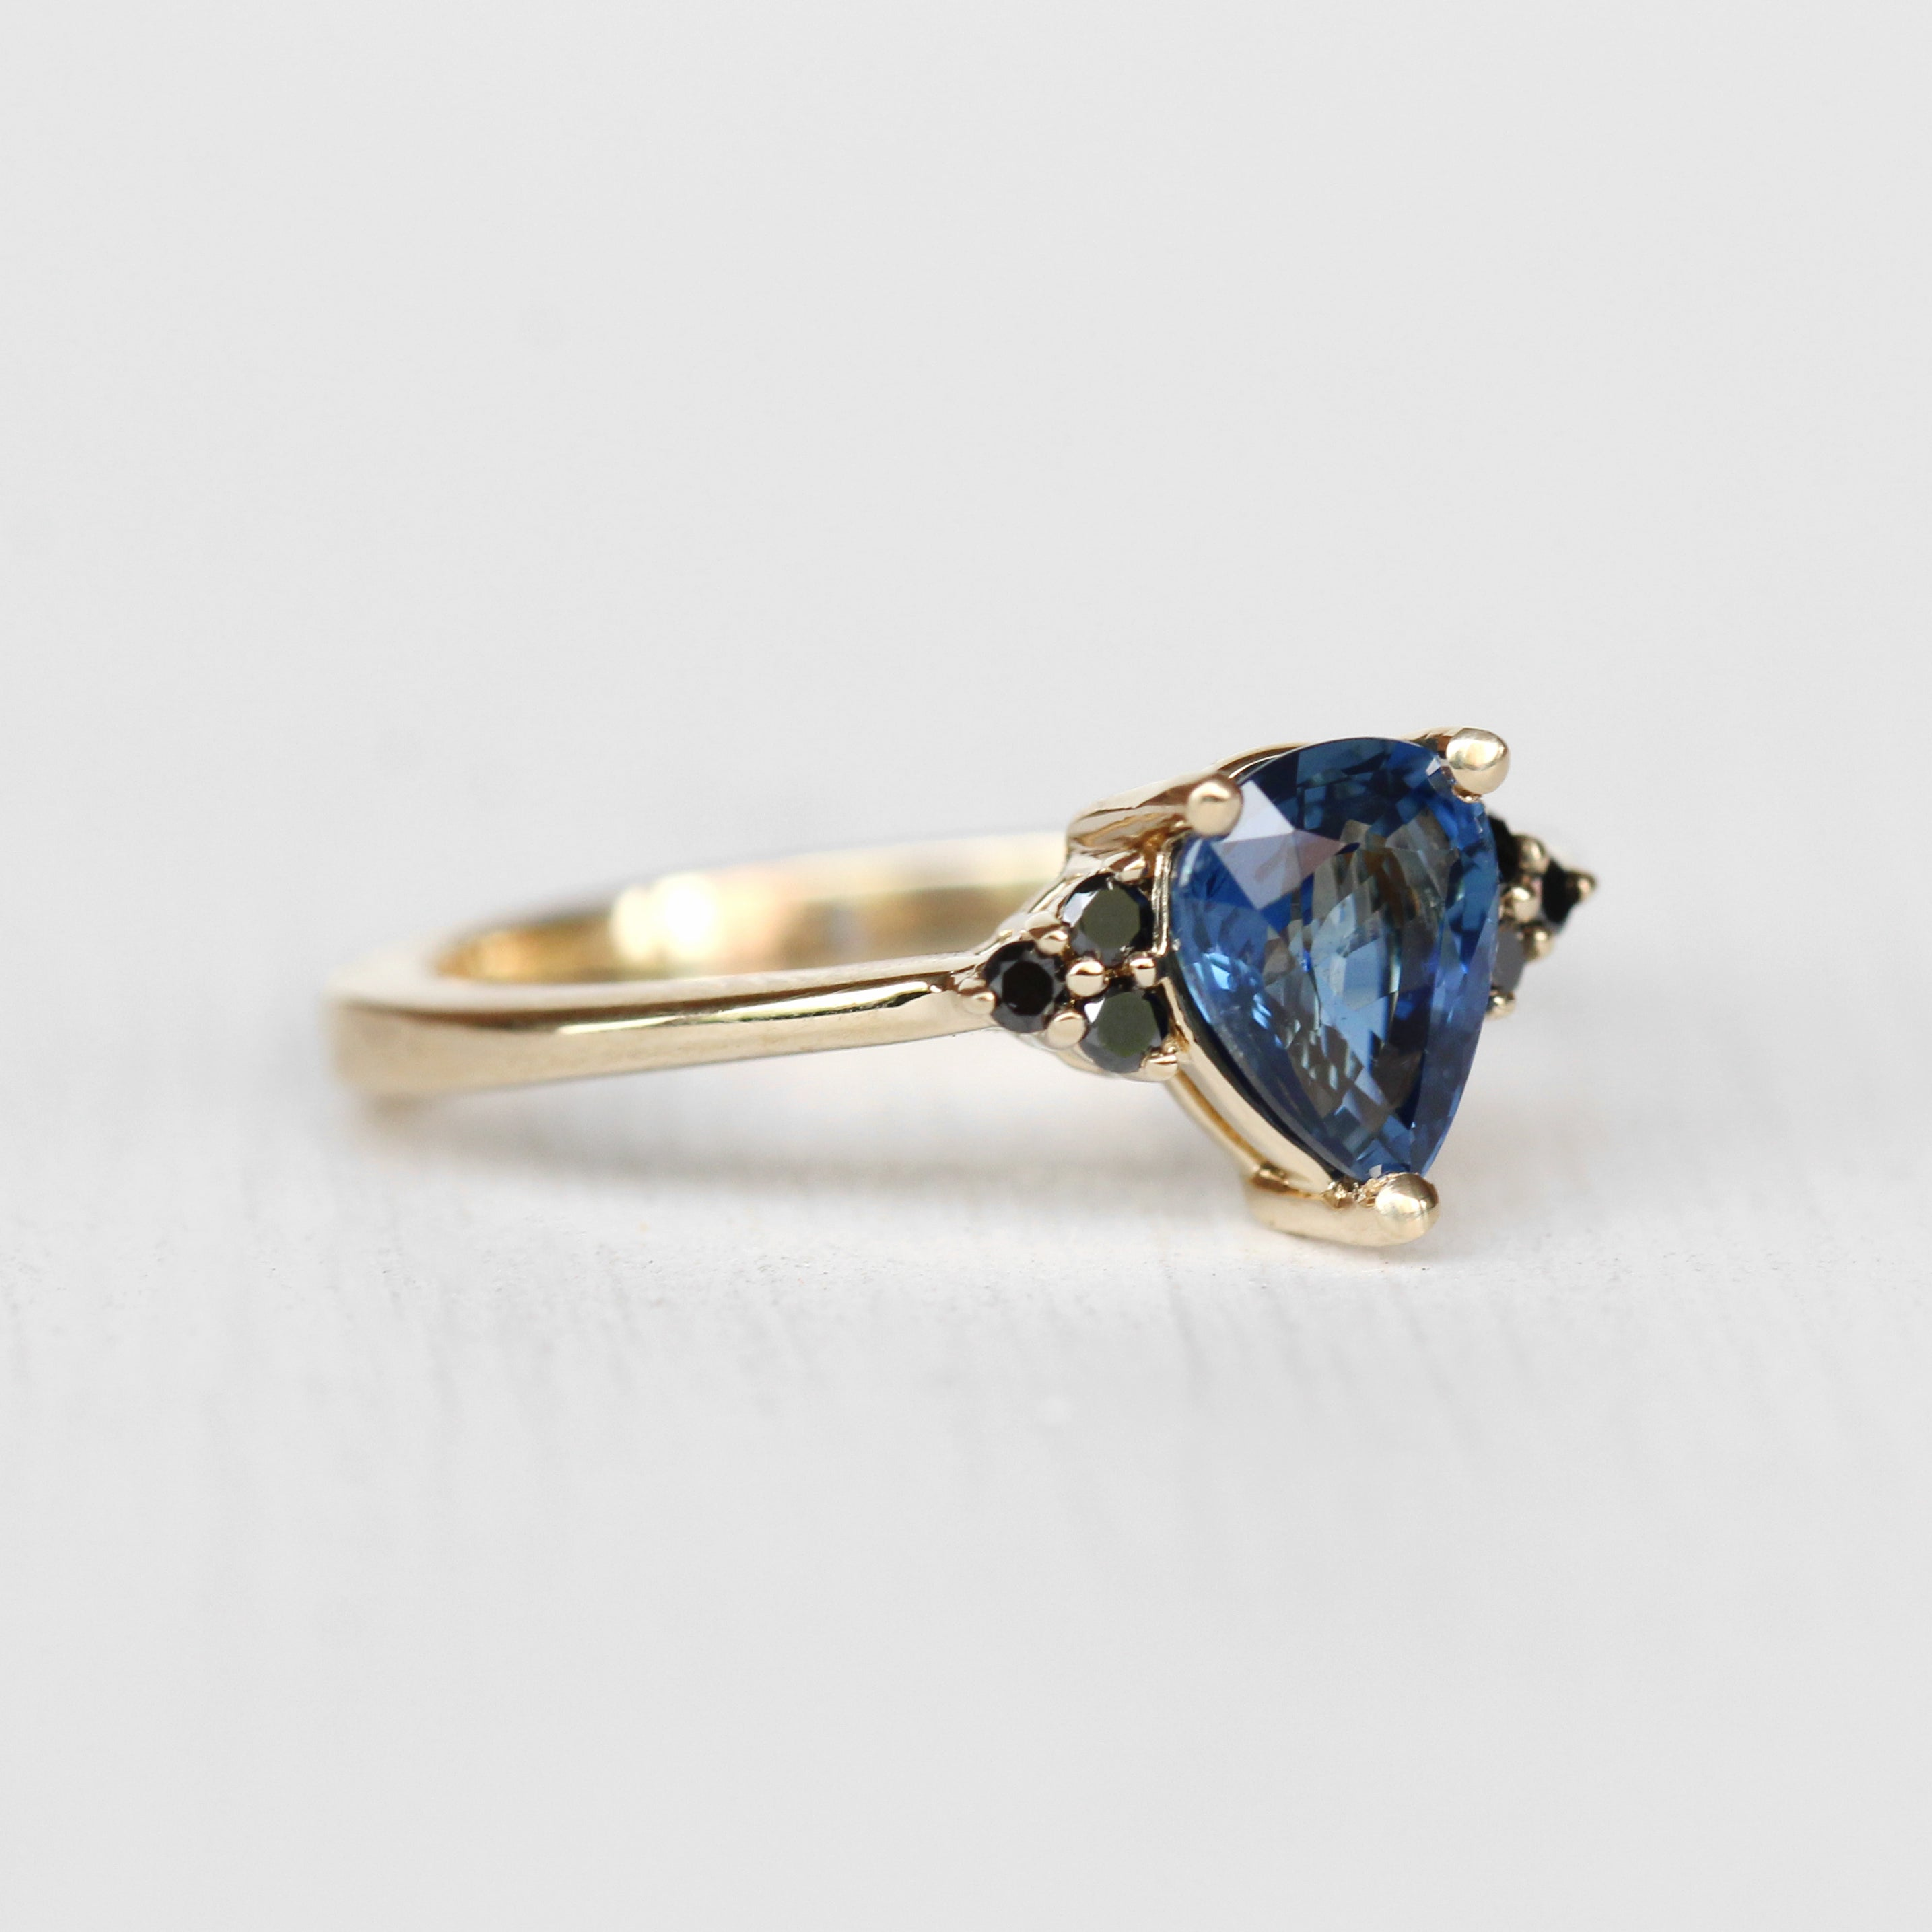 Imogene Ring with Blue Sapphire and Black Diamonds in 14k Yellow Gold - Ready to size and ship